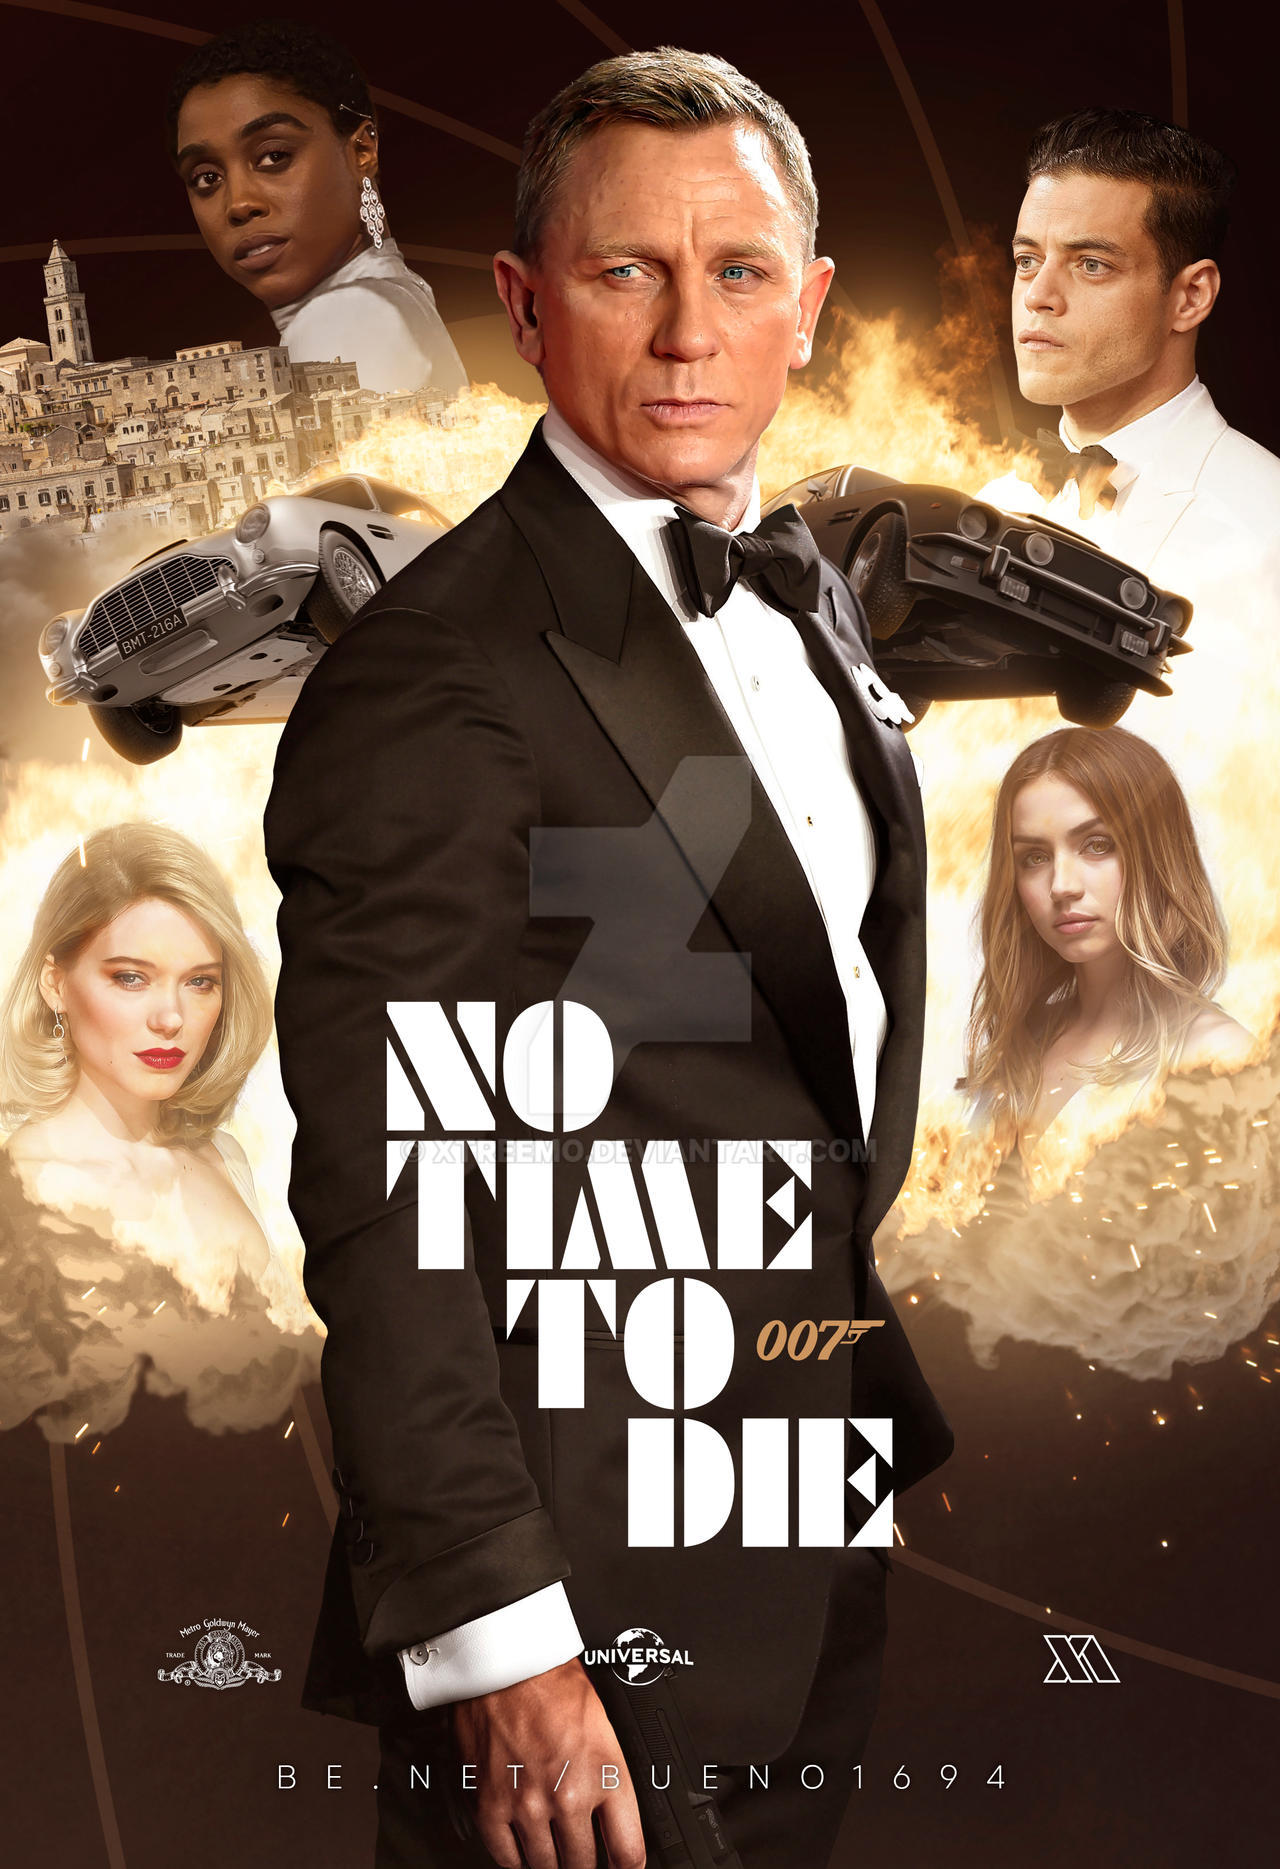 007: No Time To Die' Fan Poster II by Xtreemo on DeviantArt